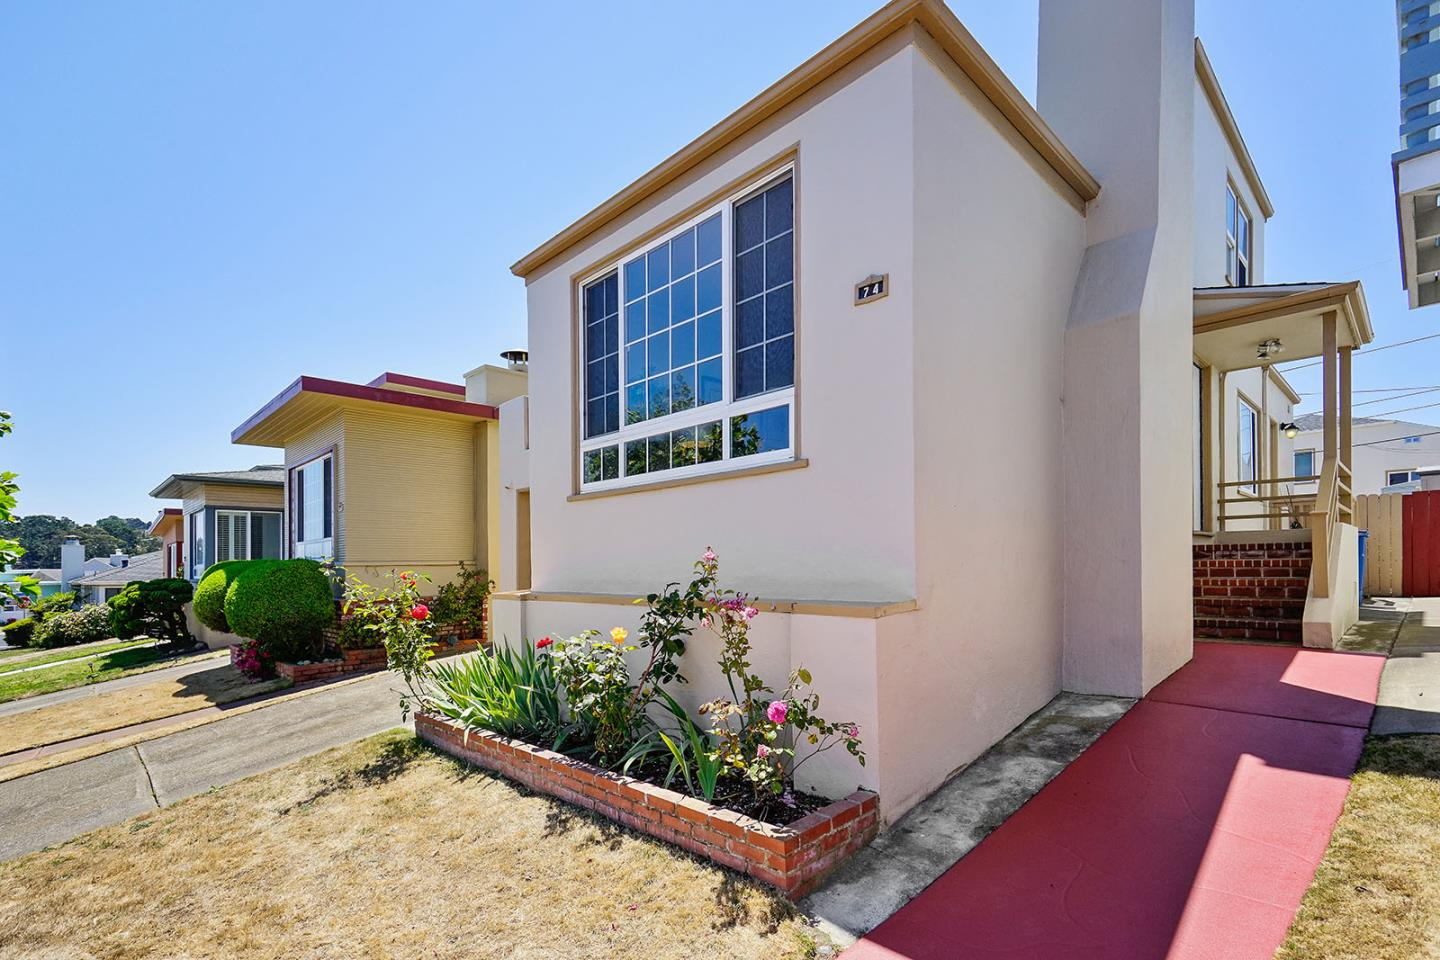 Additional photo for property listing at 74 Clifton Drive  Daly City, カリフォルニア 94015 アメリカ合衆国